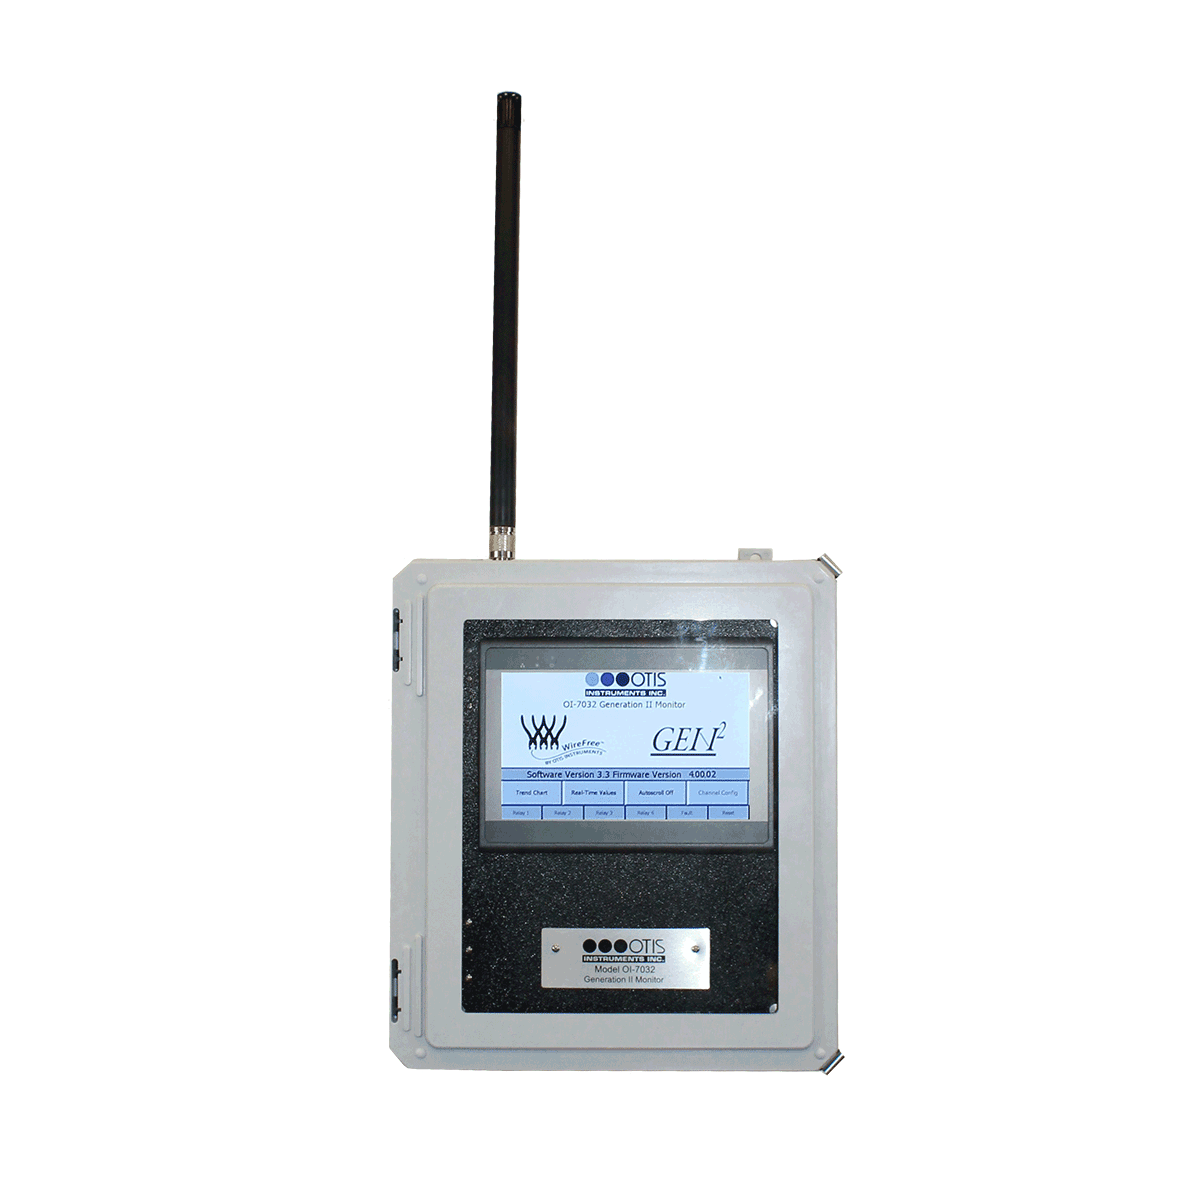 OI-7032 Monitor - Otis Instruments